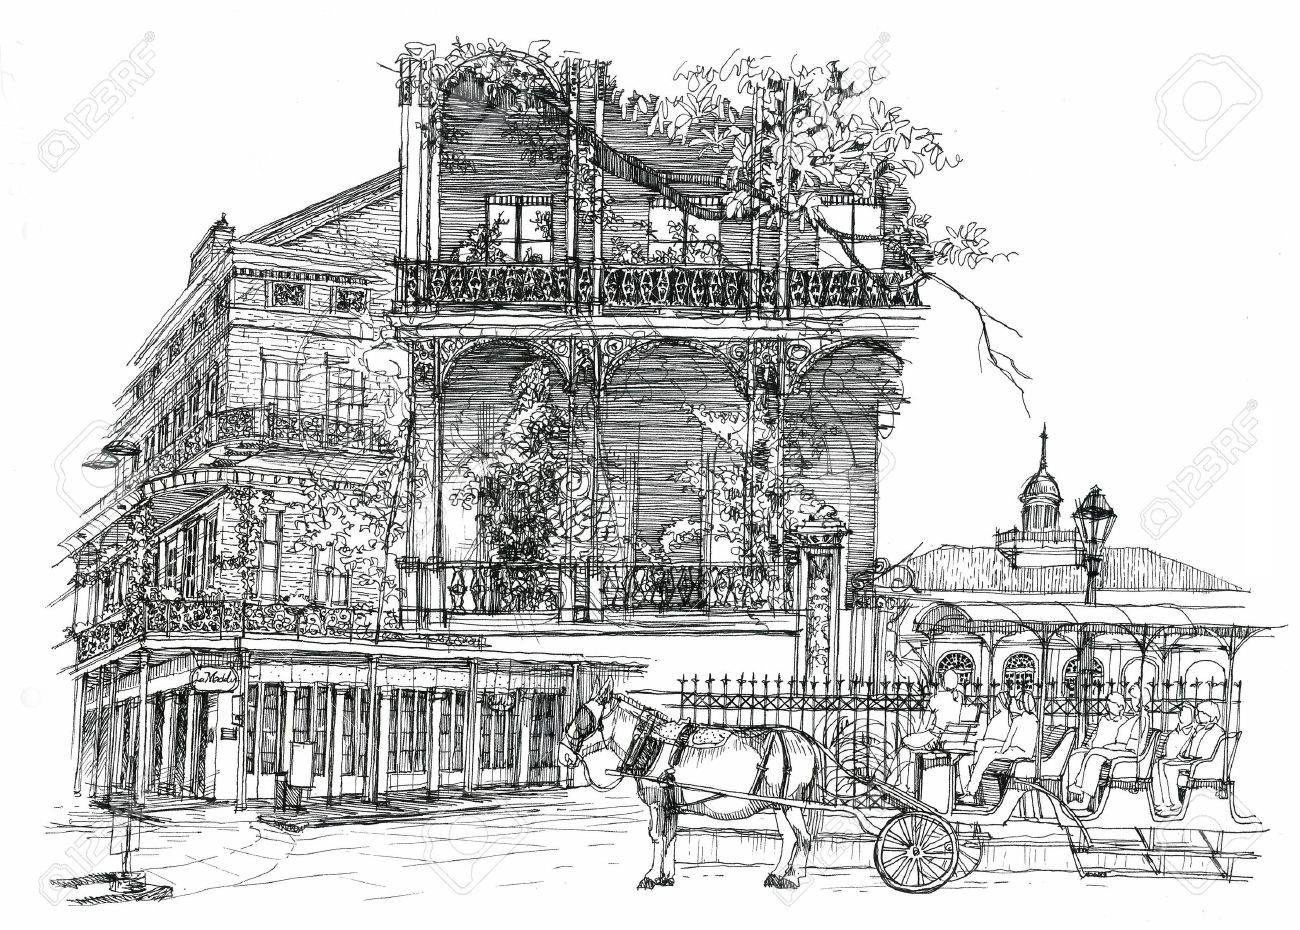 New Orleans architectural illustration drawing - 28327785